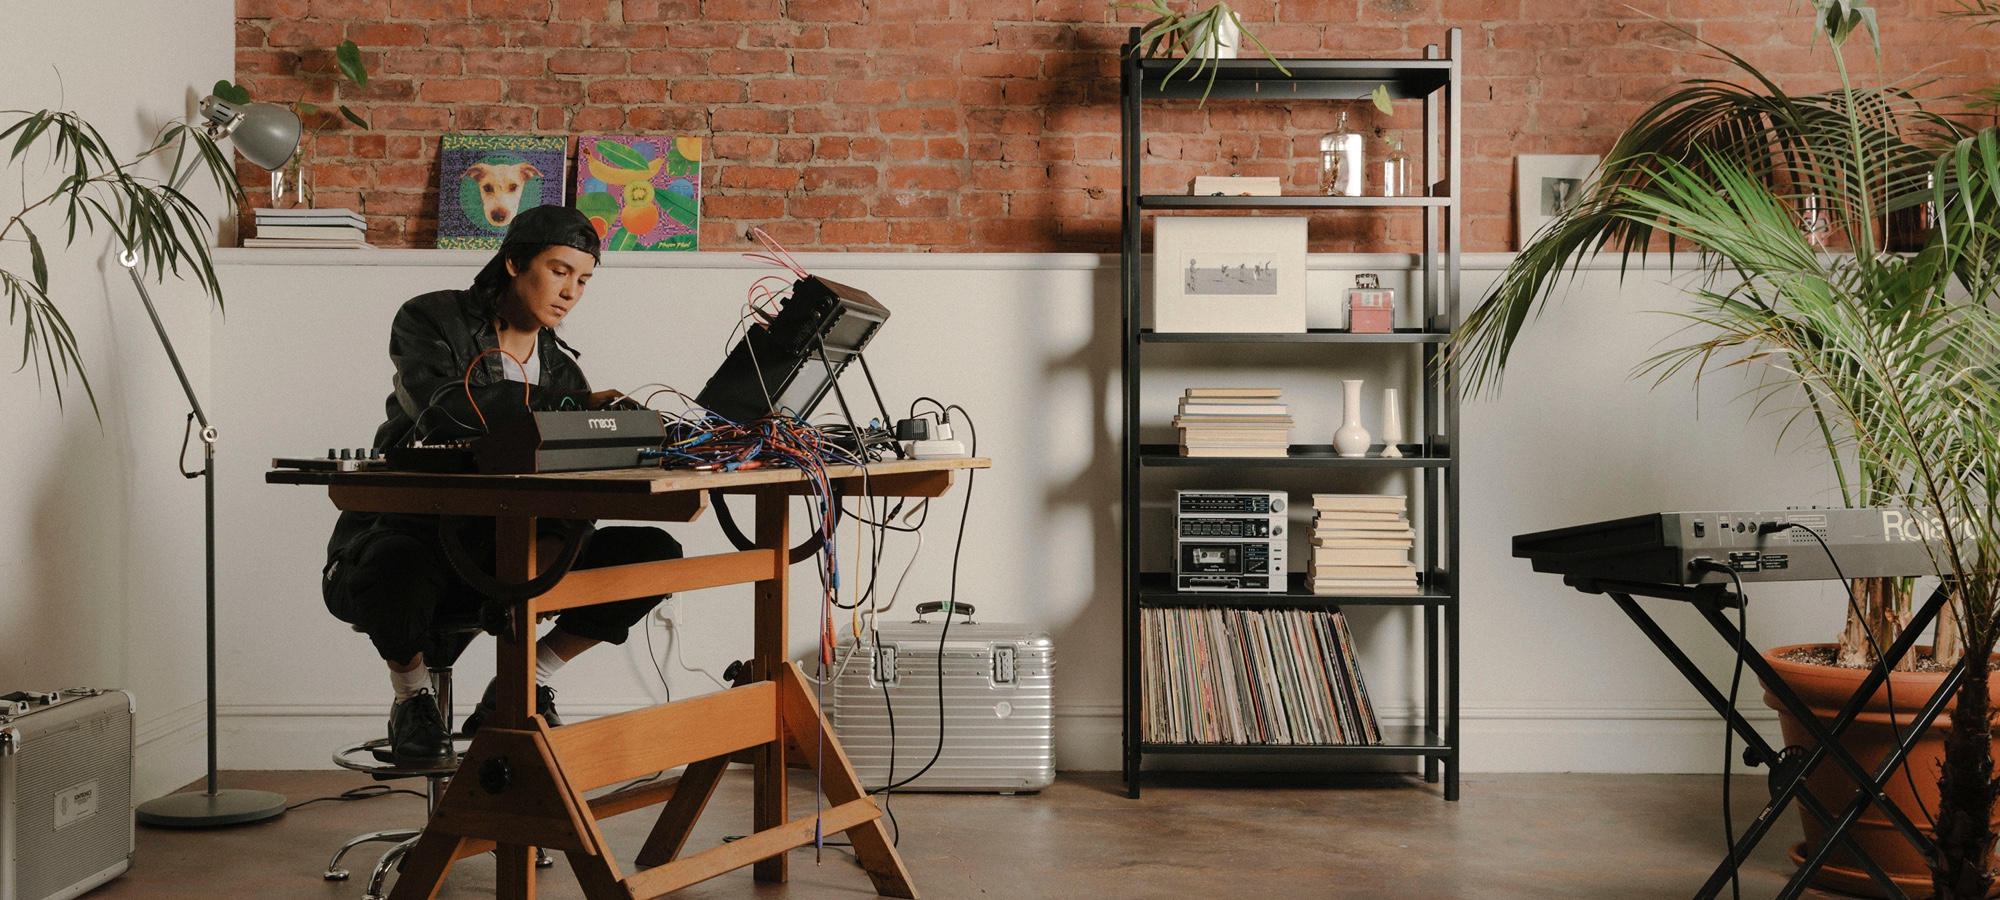 Kim Ann Foxman in her studio with a Floyd shelf.